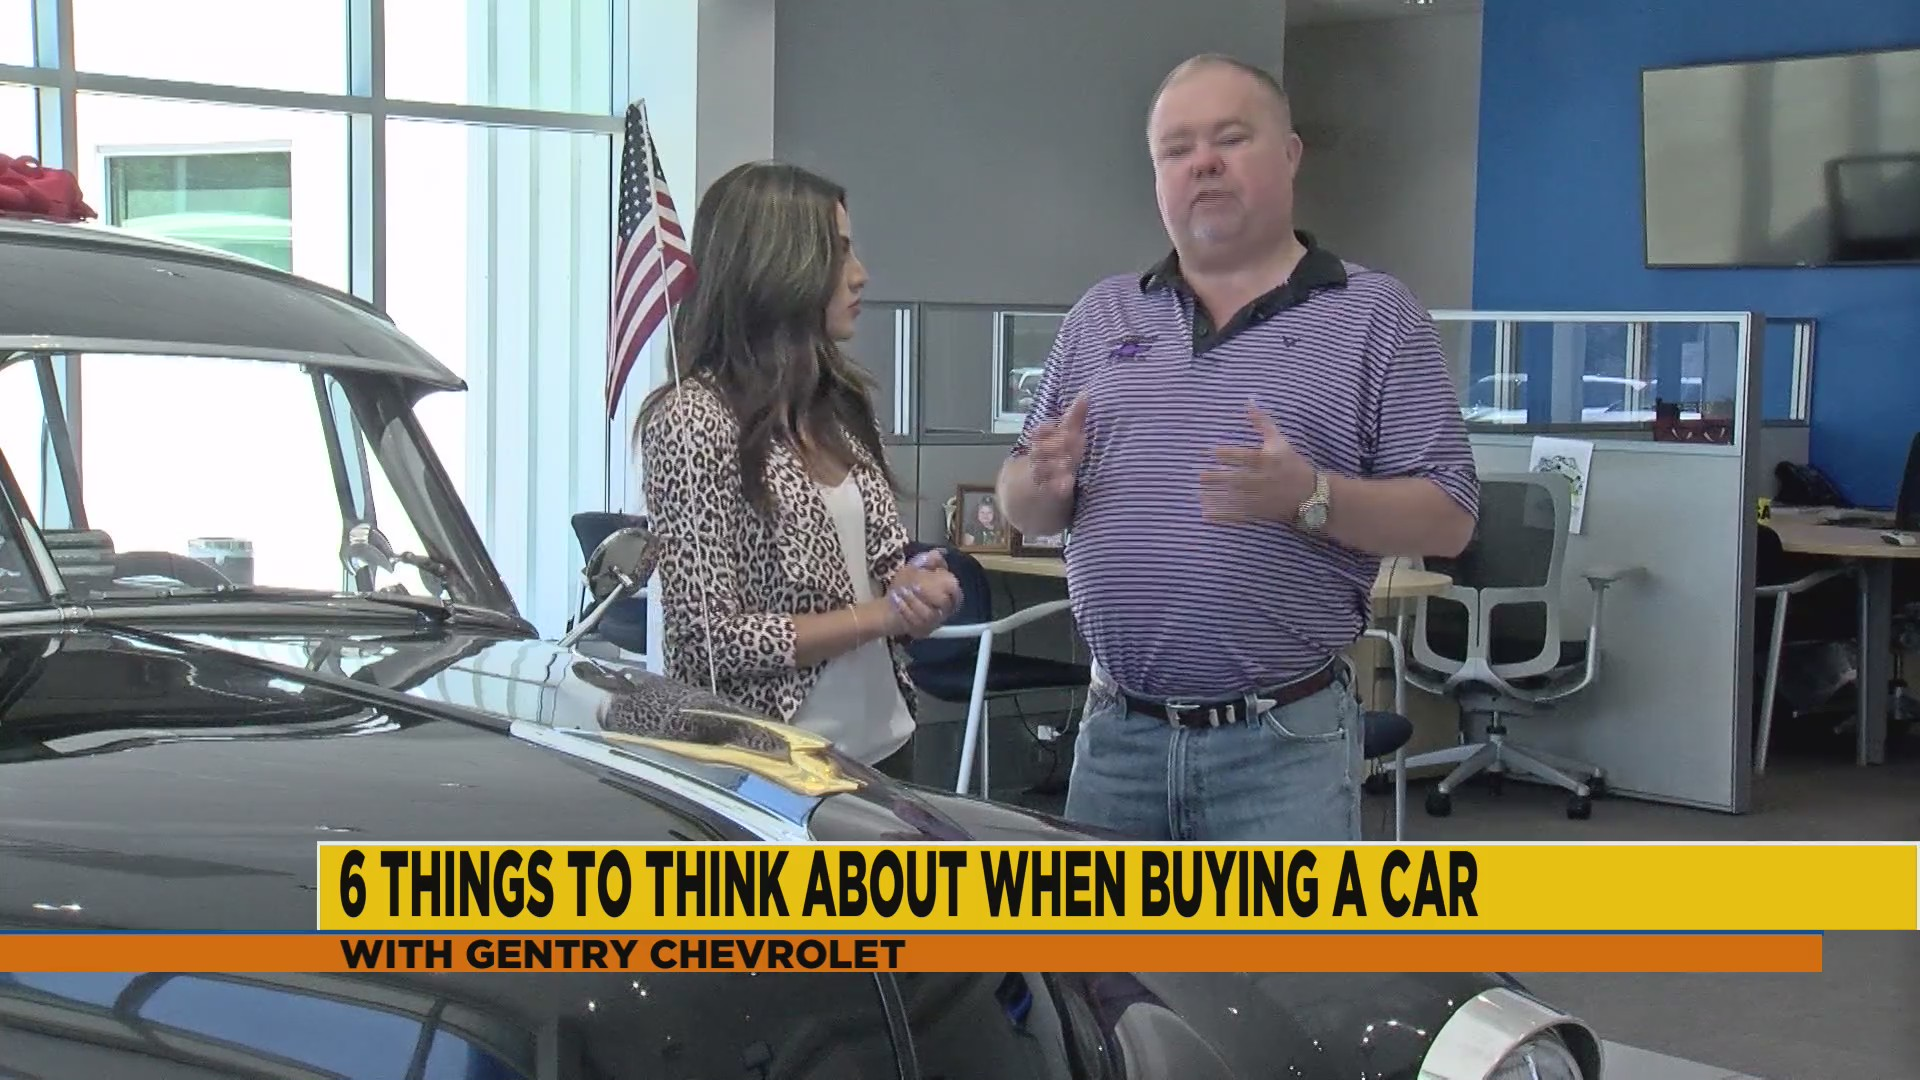 6 Things To Think About When Buying A Car Gentry Chevrolet Arklatexhomepage